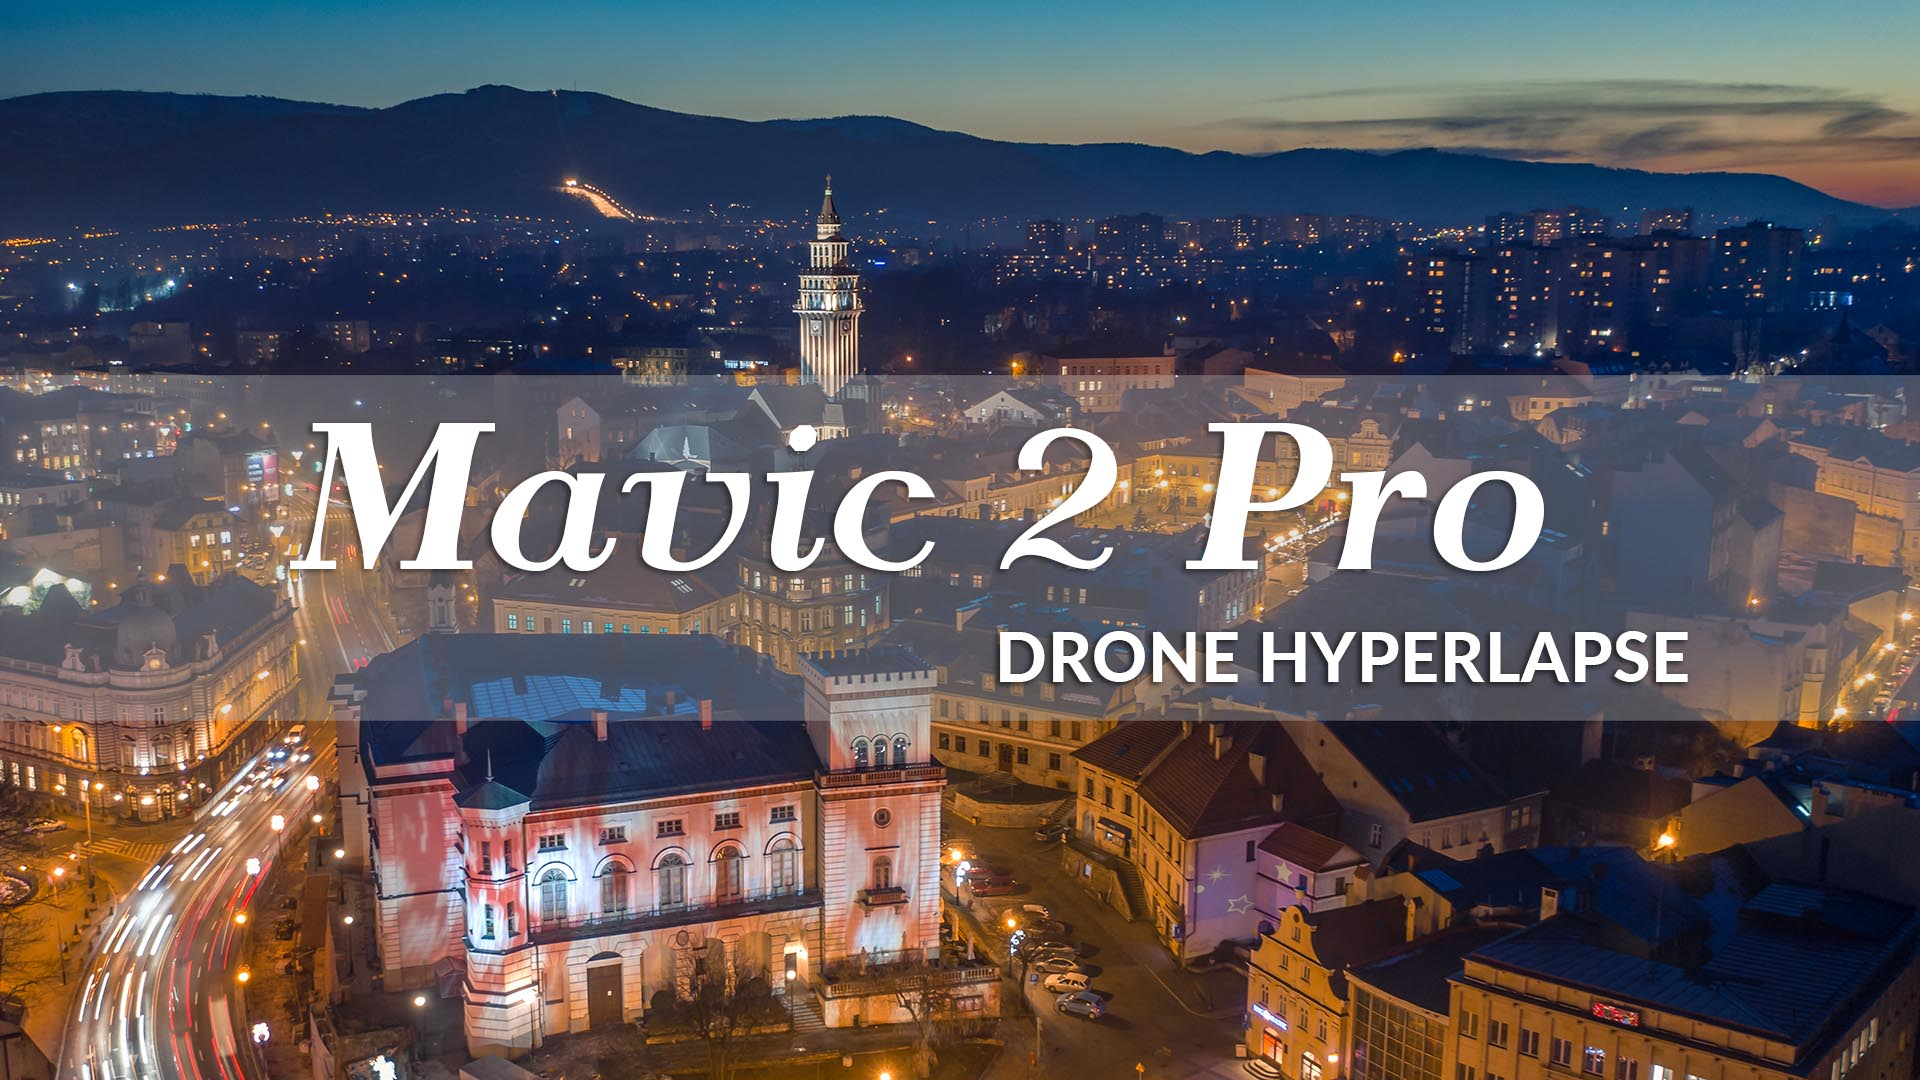 Mavic 2 Pro - Drone Hyperlapse Video and a Review - Beyond